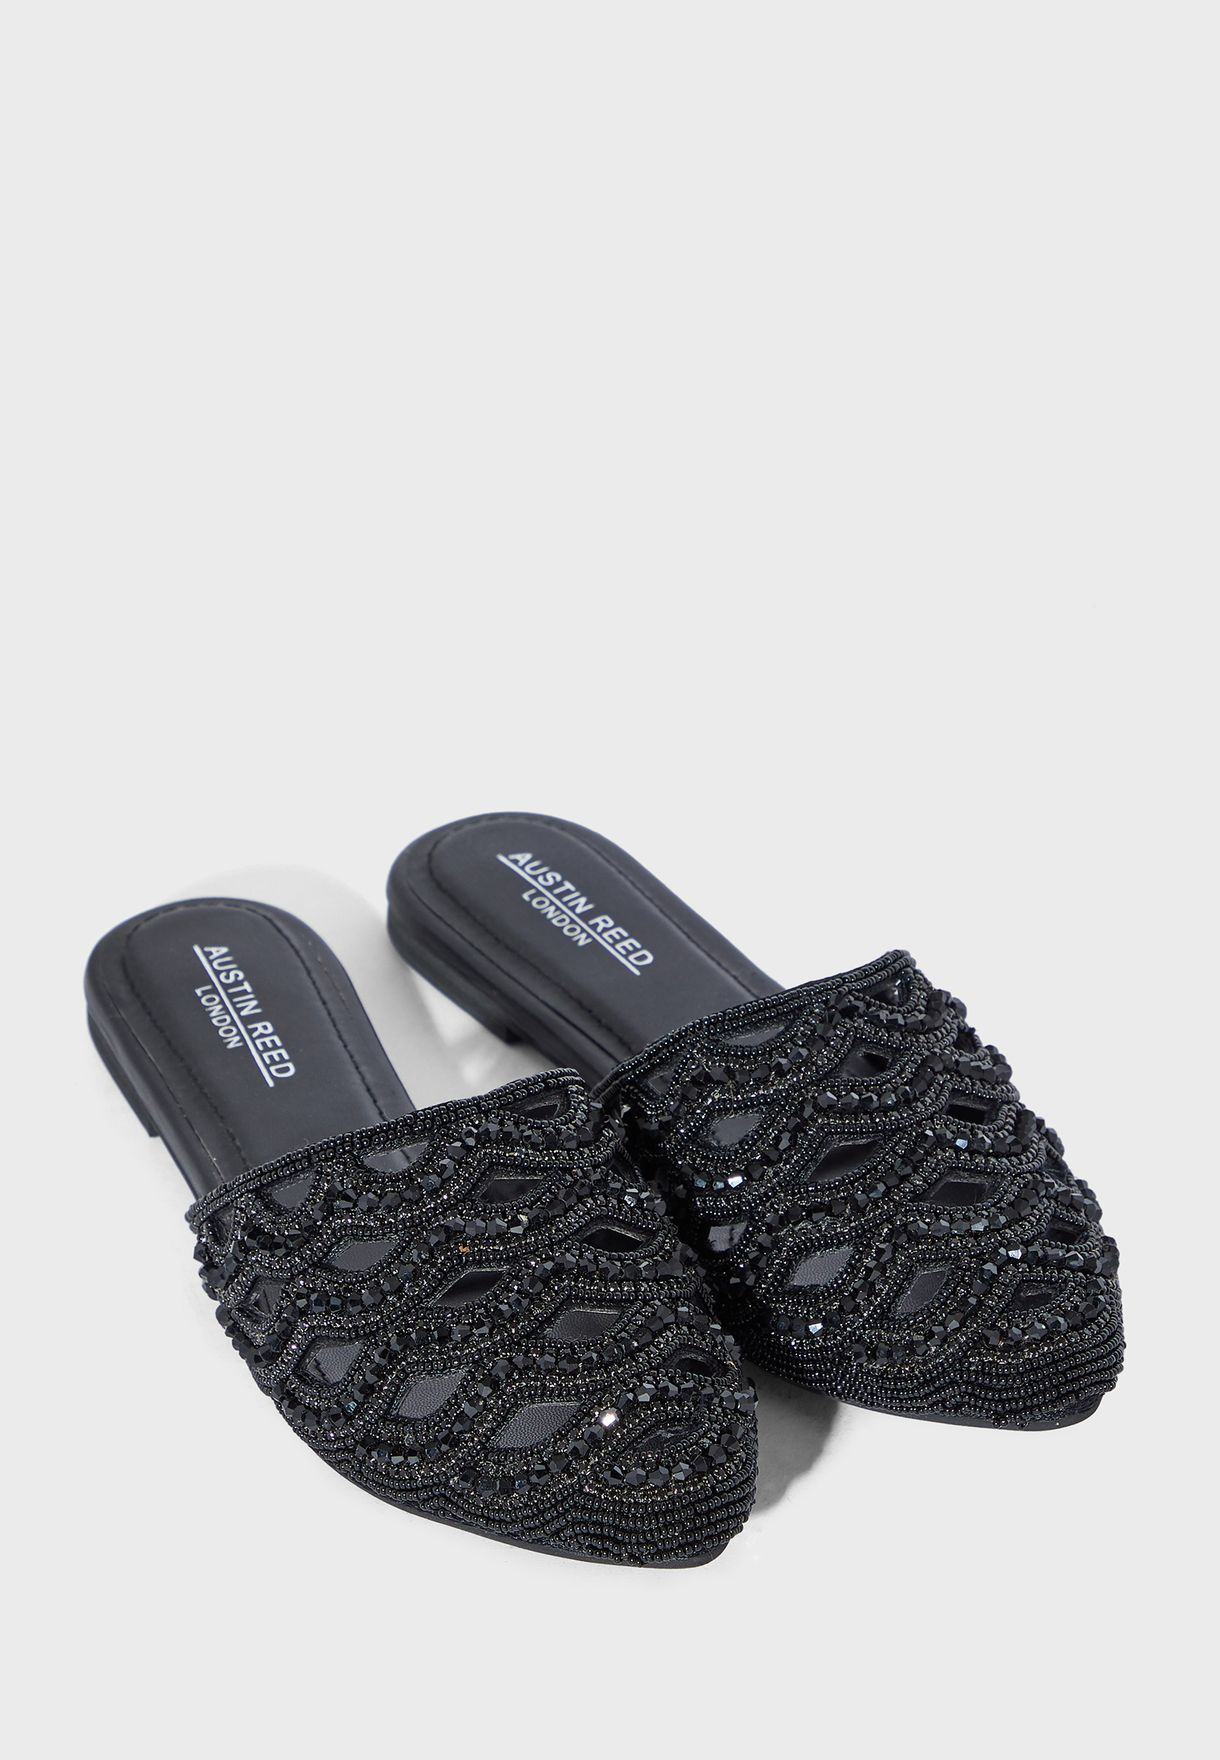 Buy Austin Reed Black Embellished Slip On For Women In Mena Worldwide Aulfs55dff